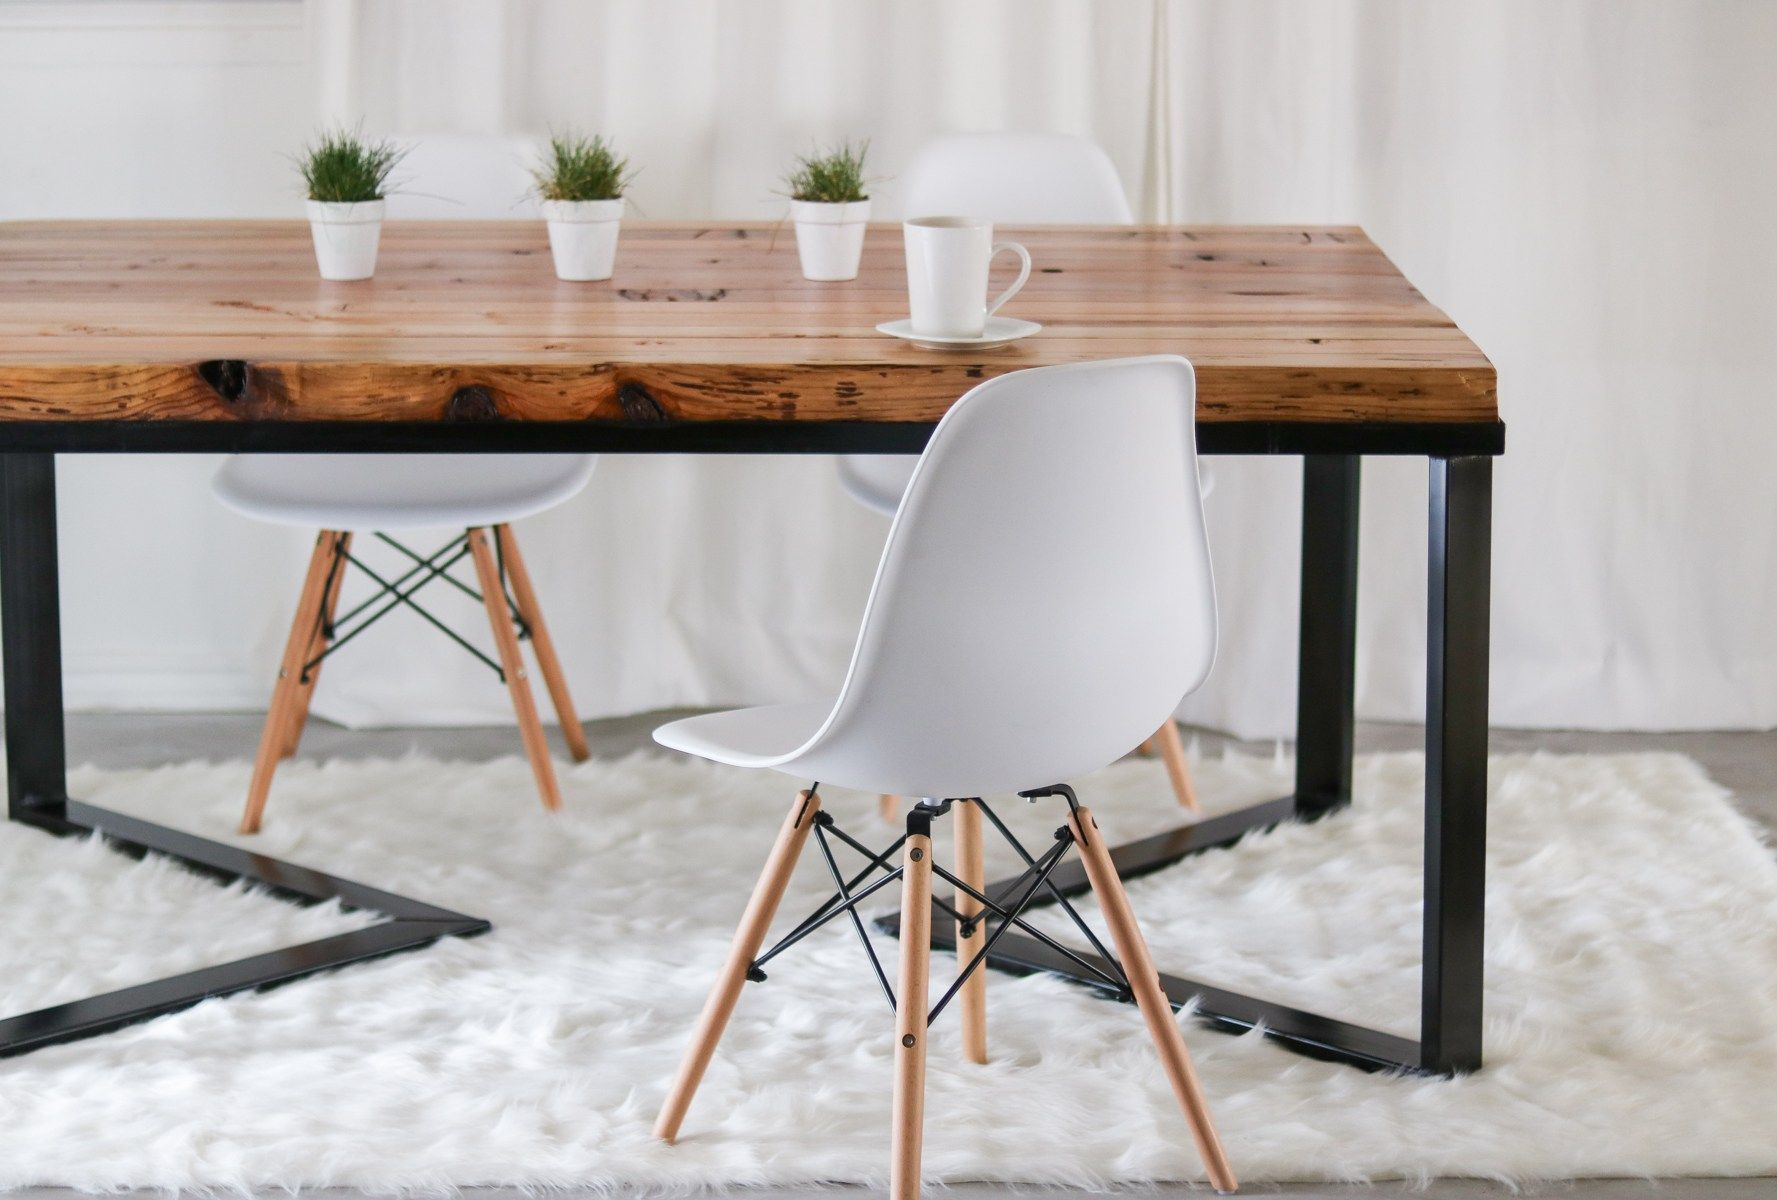 How I Made My Dining Table Under 60 Diy Table Scandinavian Diy Dining Room Table Dining Table Rustic Diy Dining Table